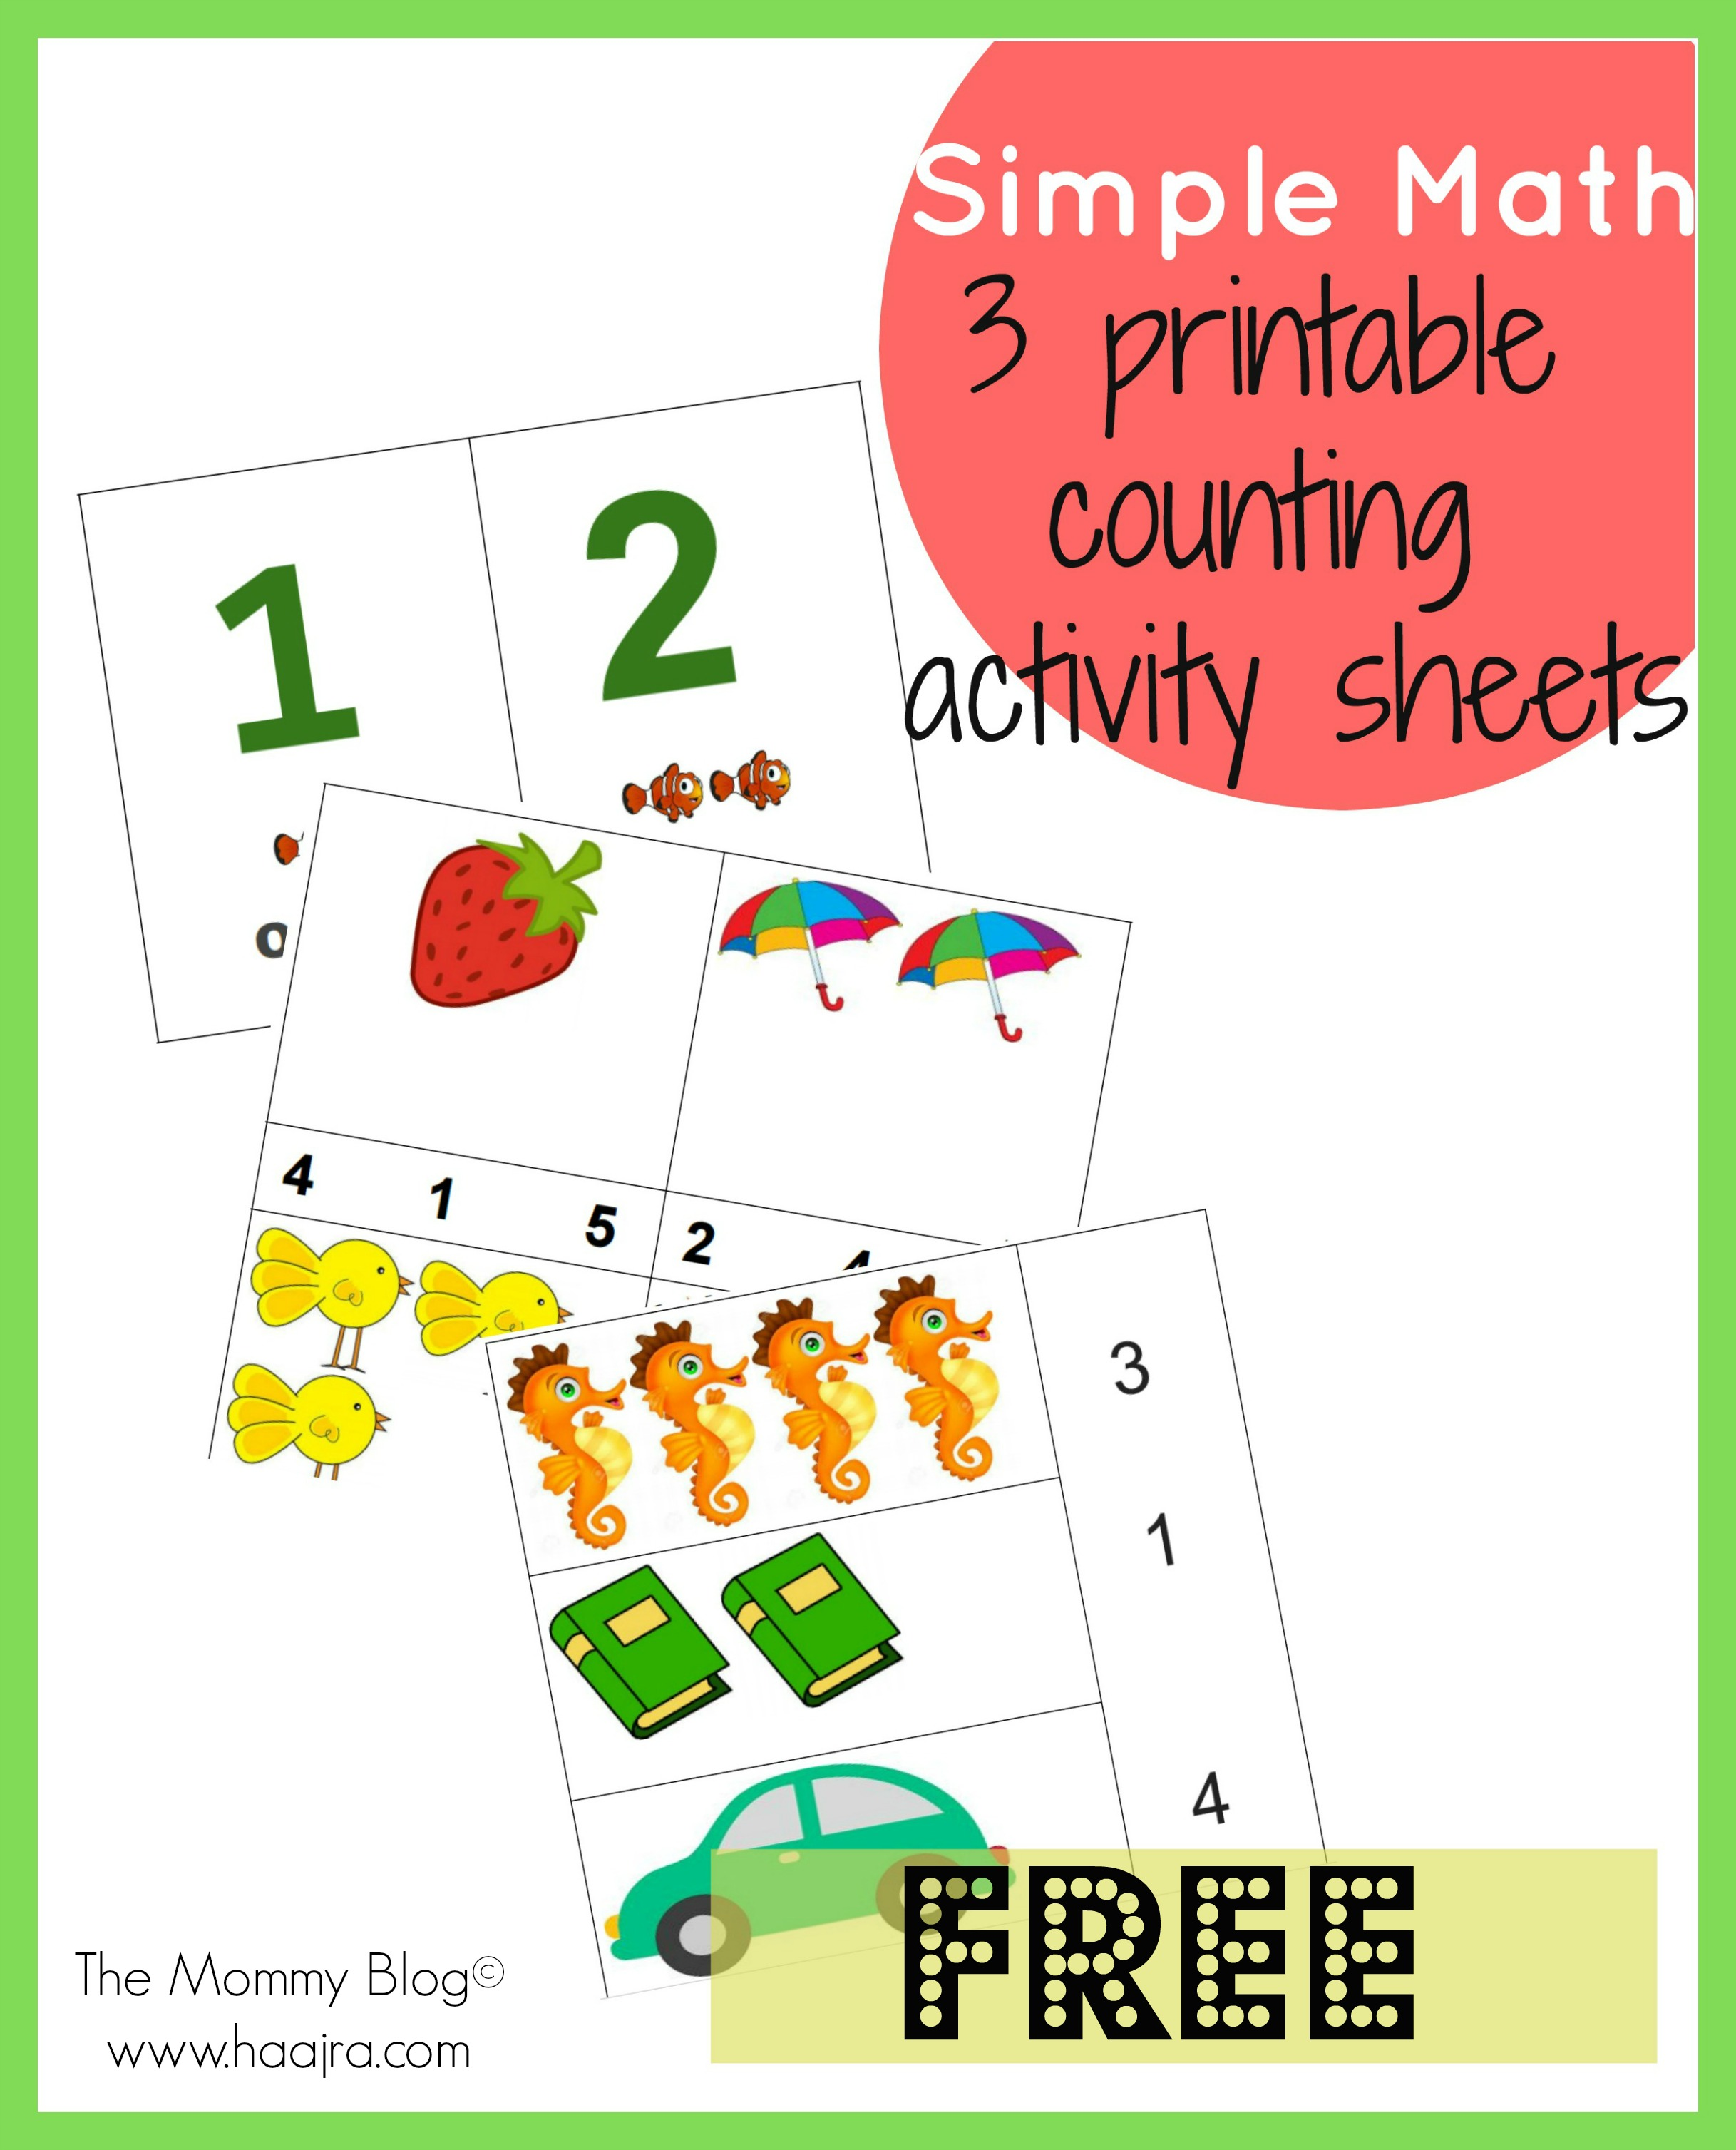 simple math counting activity sheets by The Mommy Blog